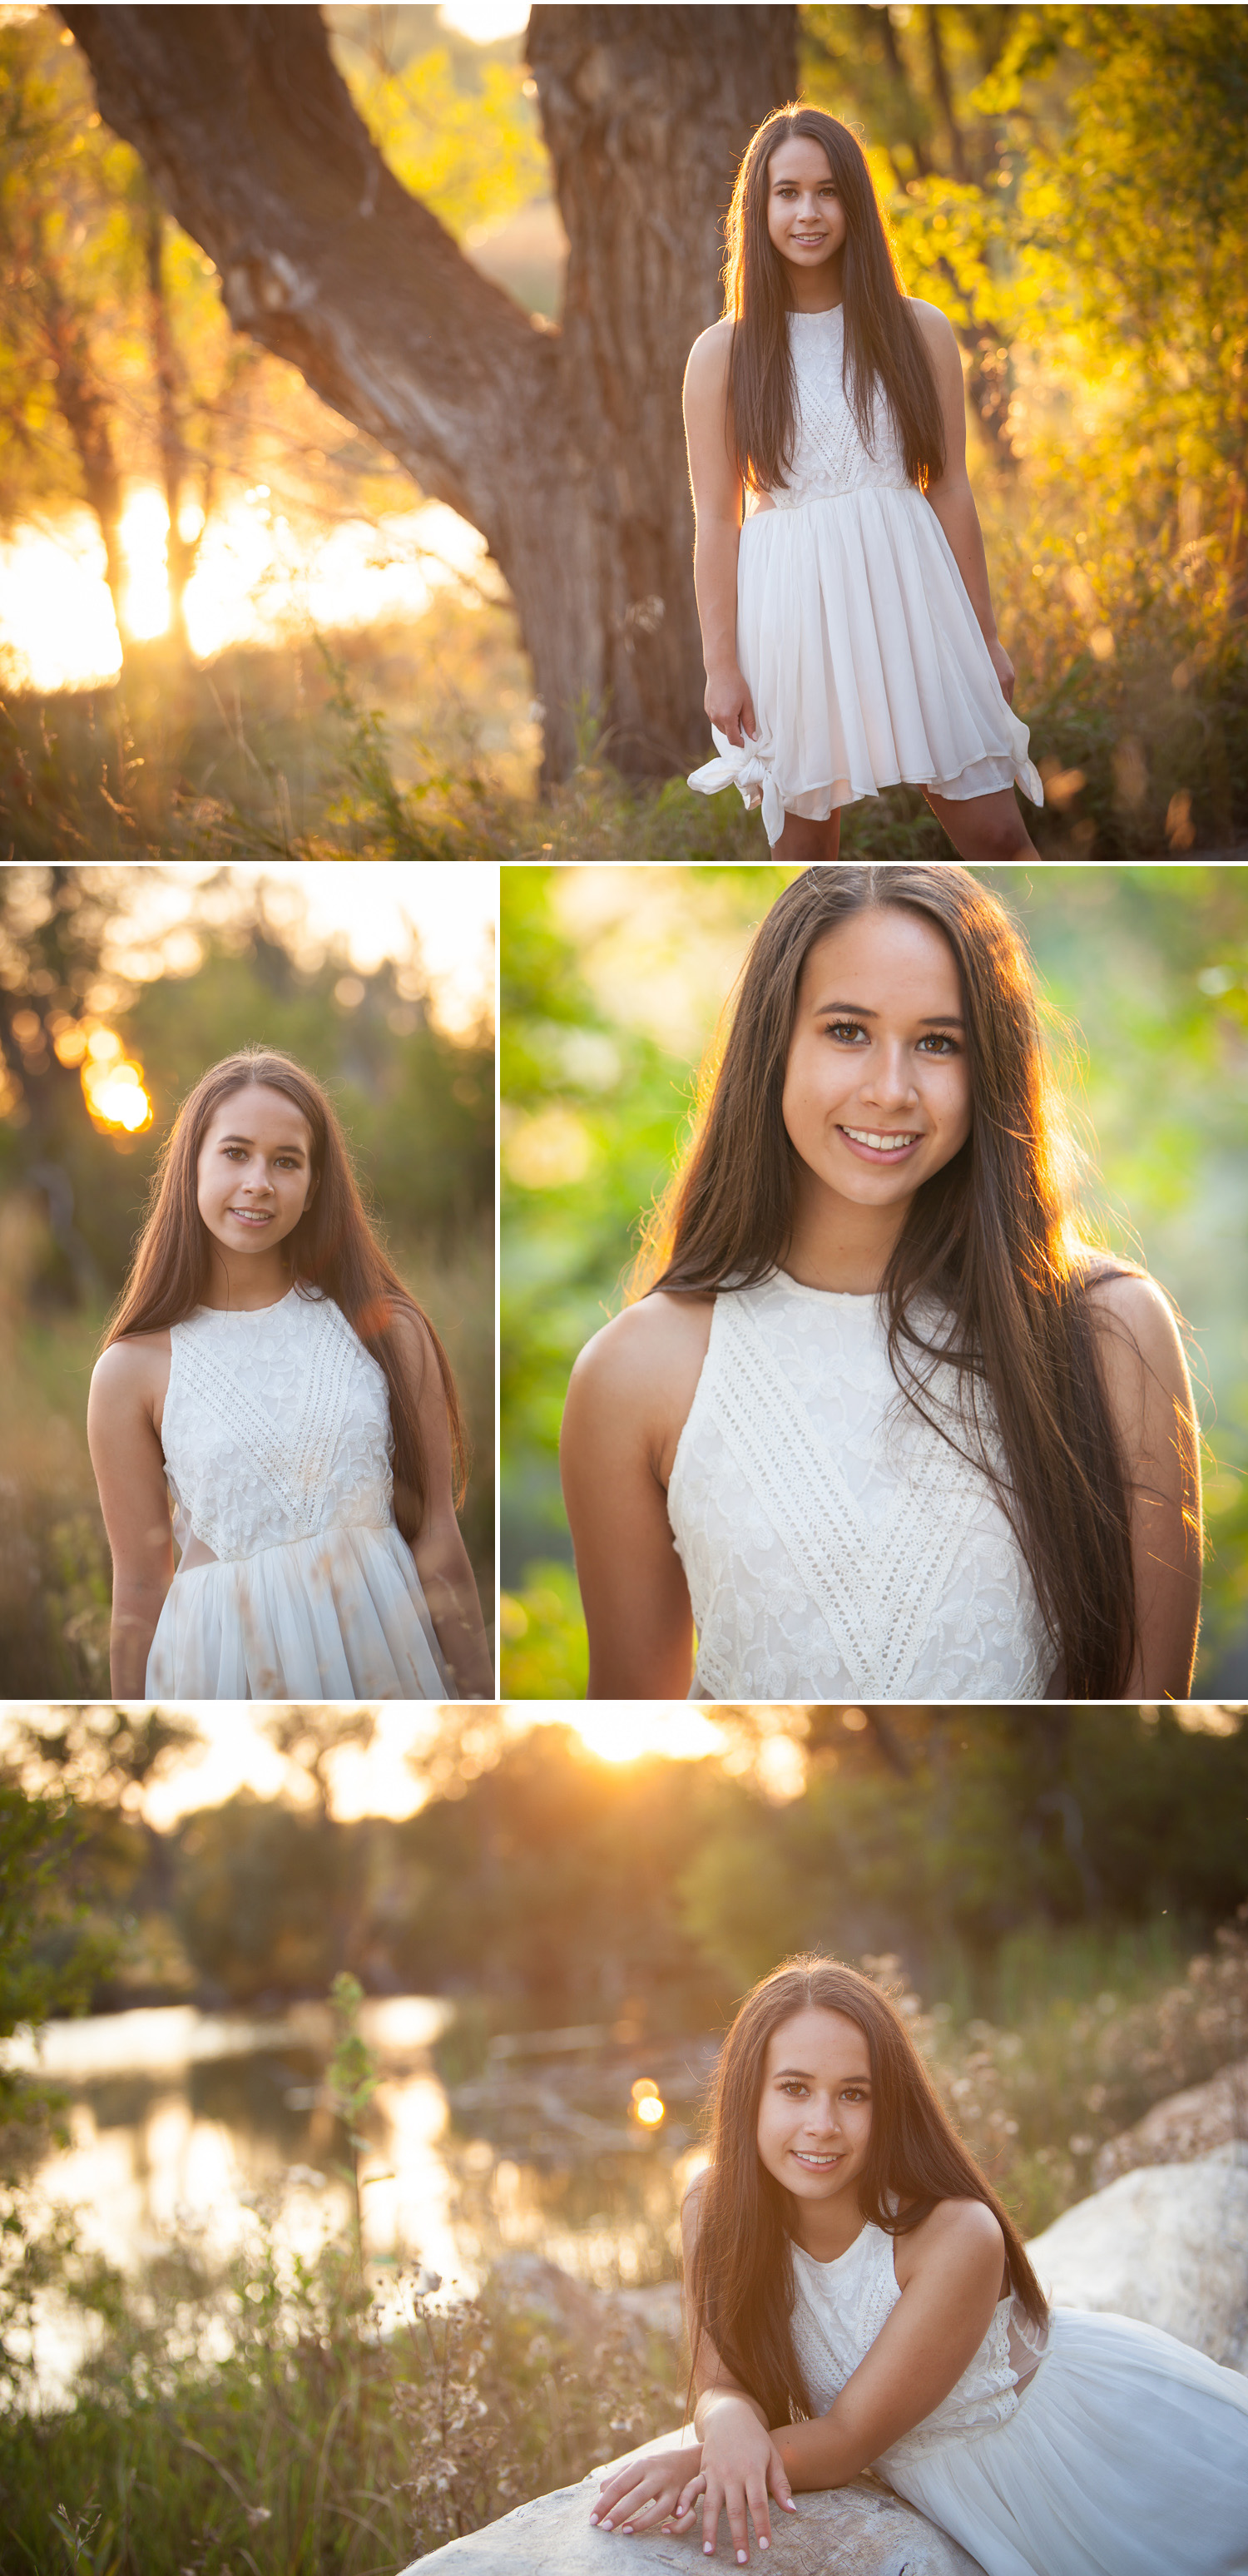 Summertime Senior Pictures with Denver Photographer Jennifer Koskinen | Merritt Portrait Studio